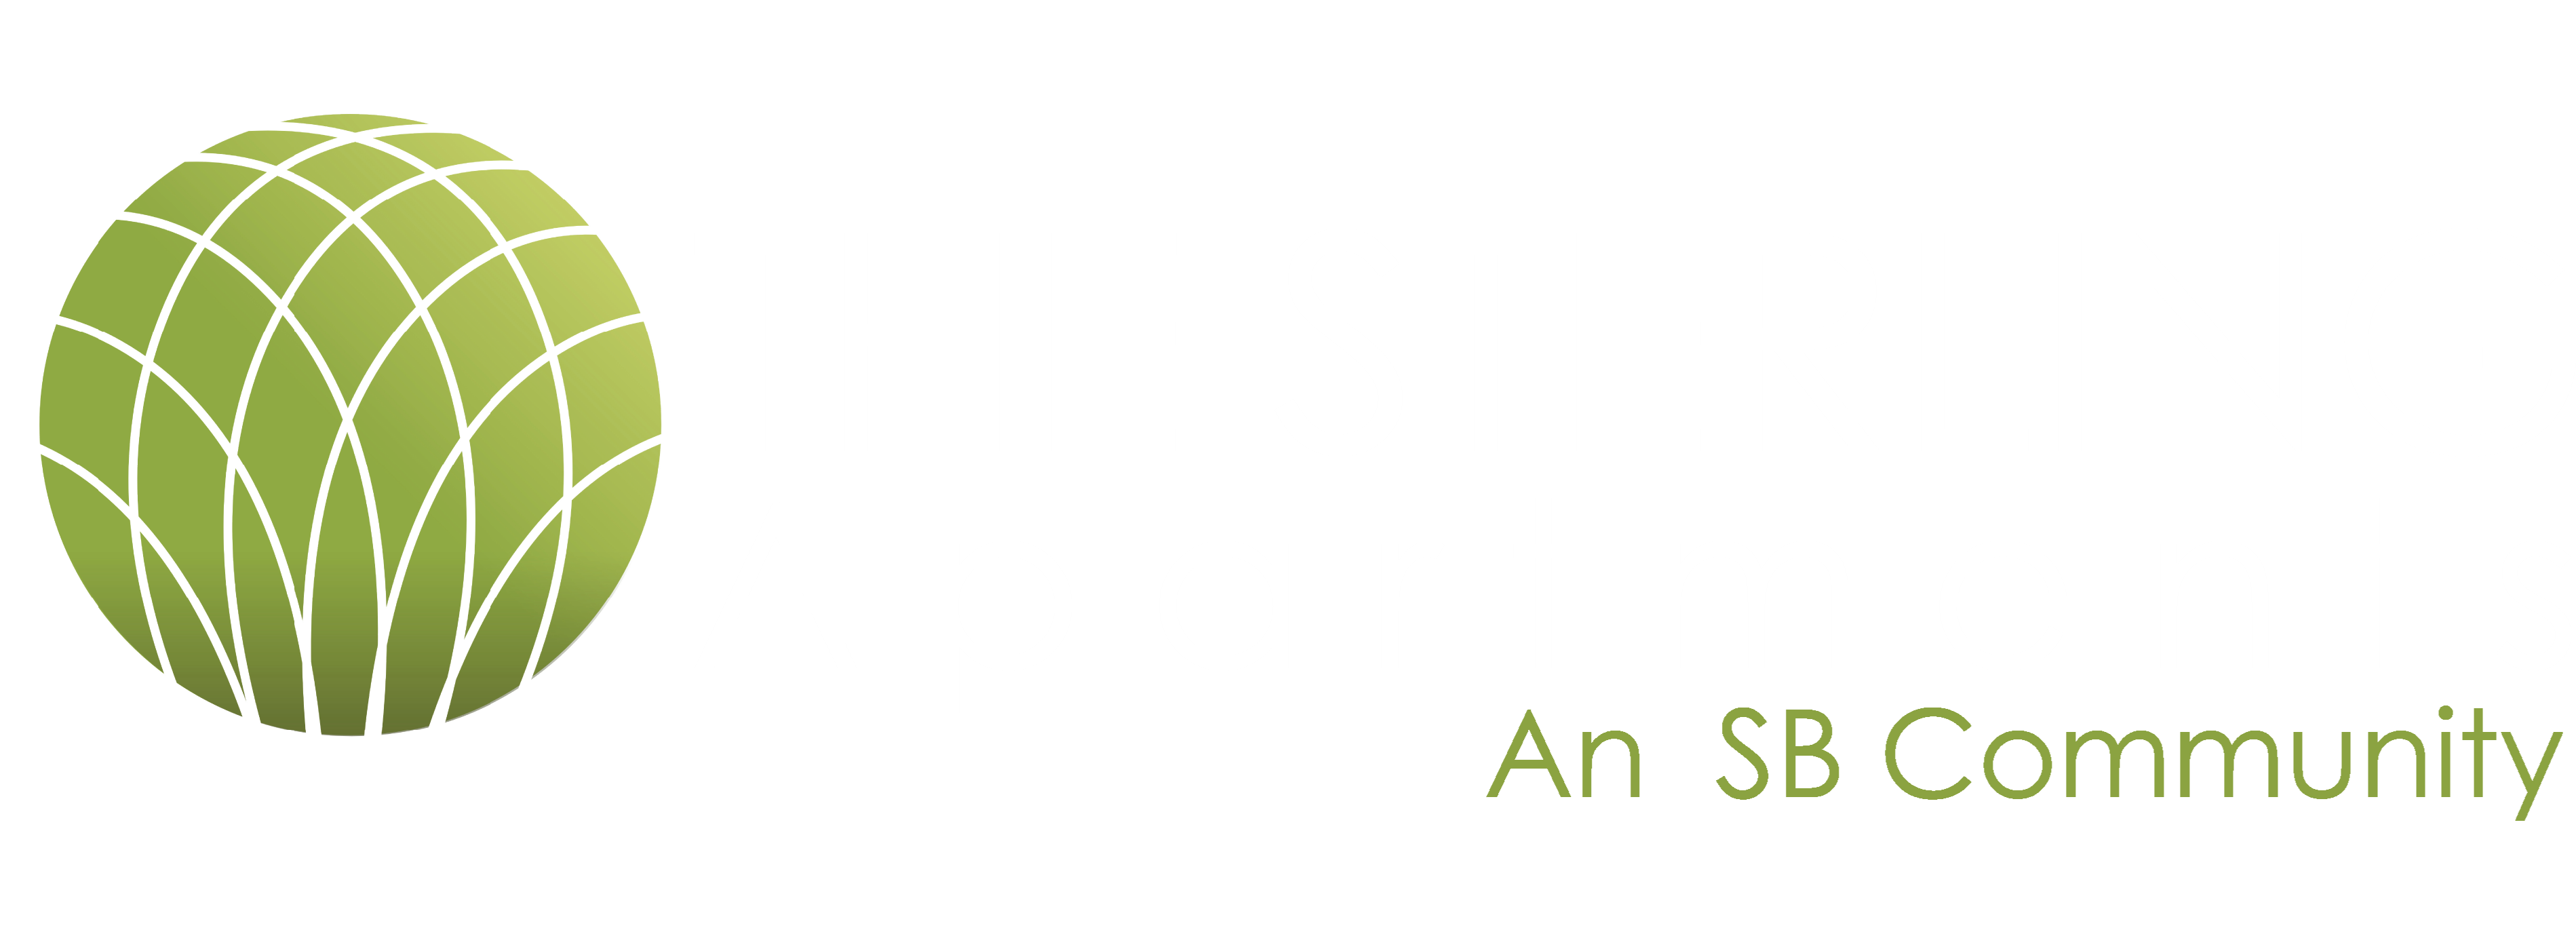 Sterling at Prairie Trail, The Property Logo 23